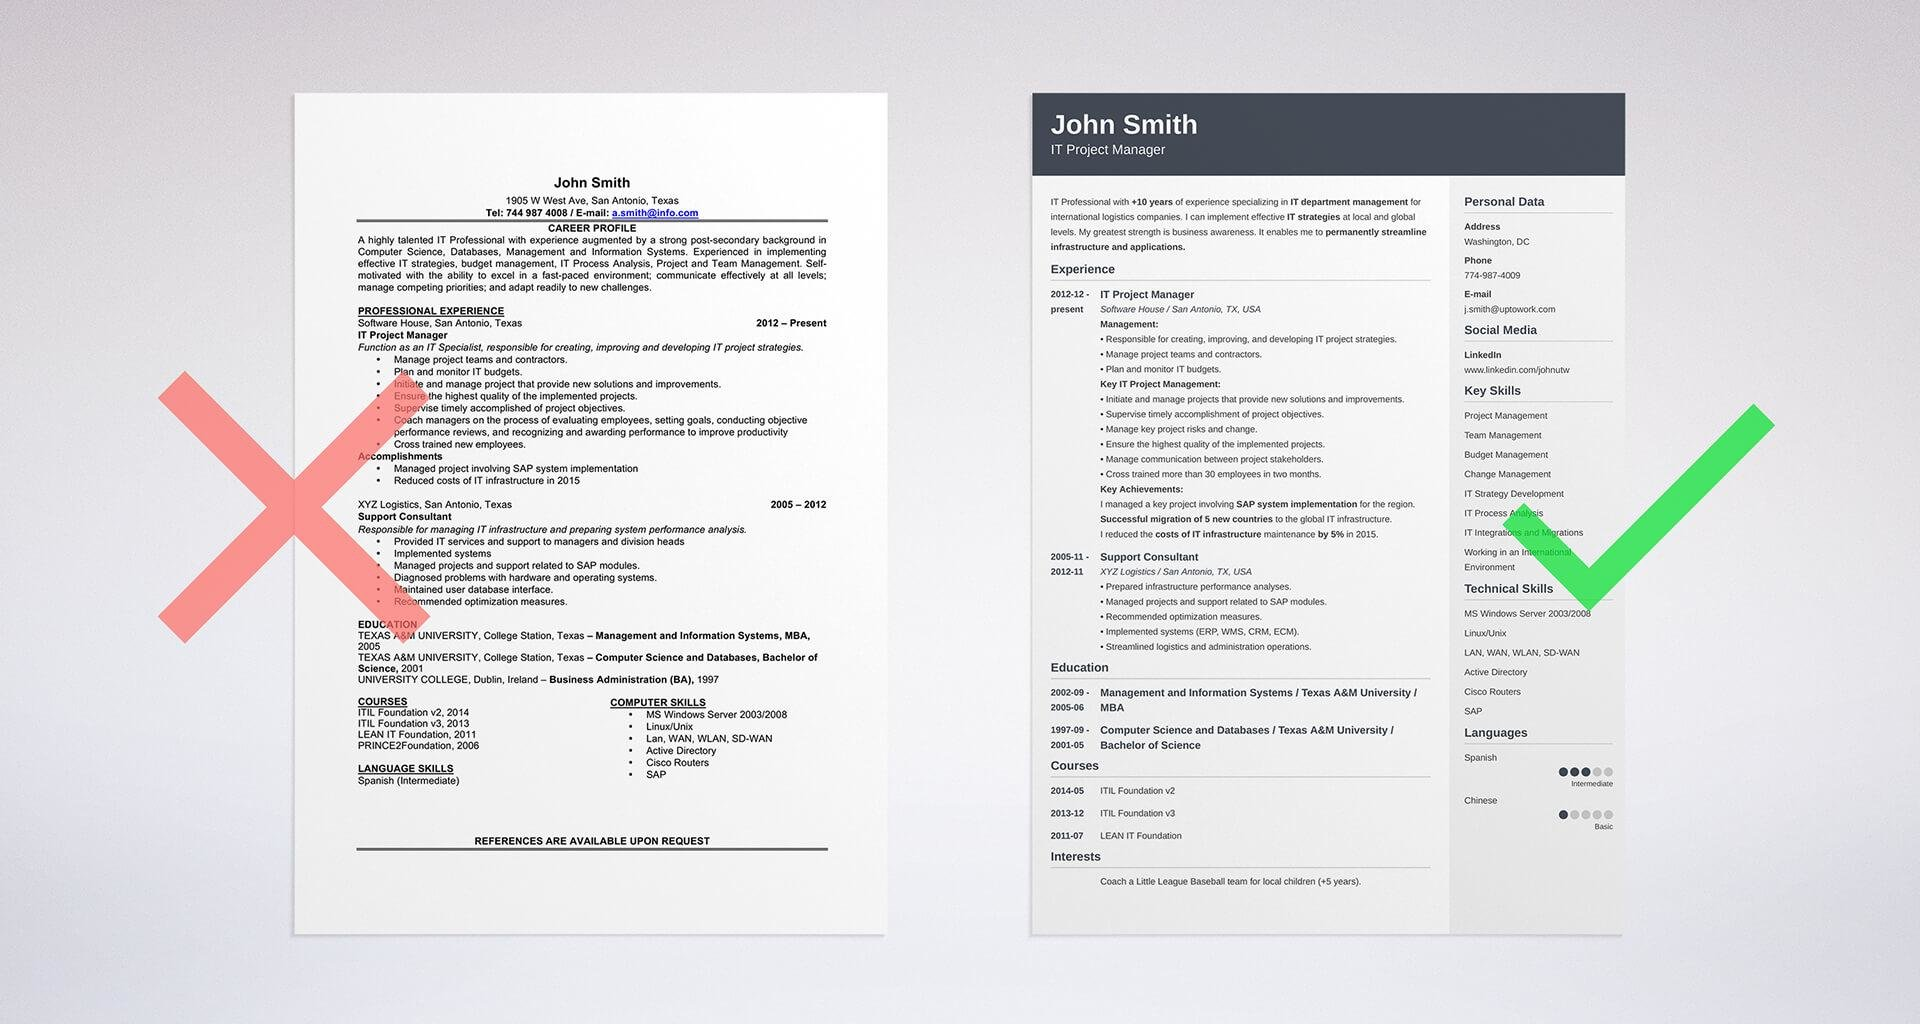 Resume Formatting   Word Or PDF?  Resume Formats In Word